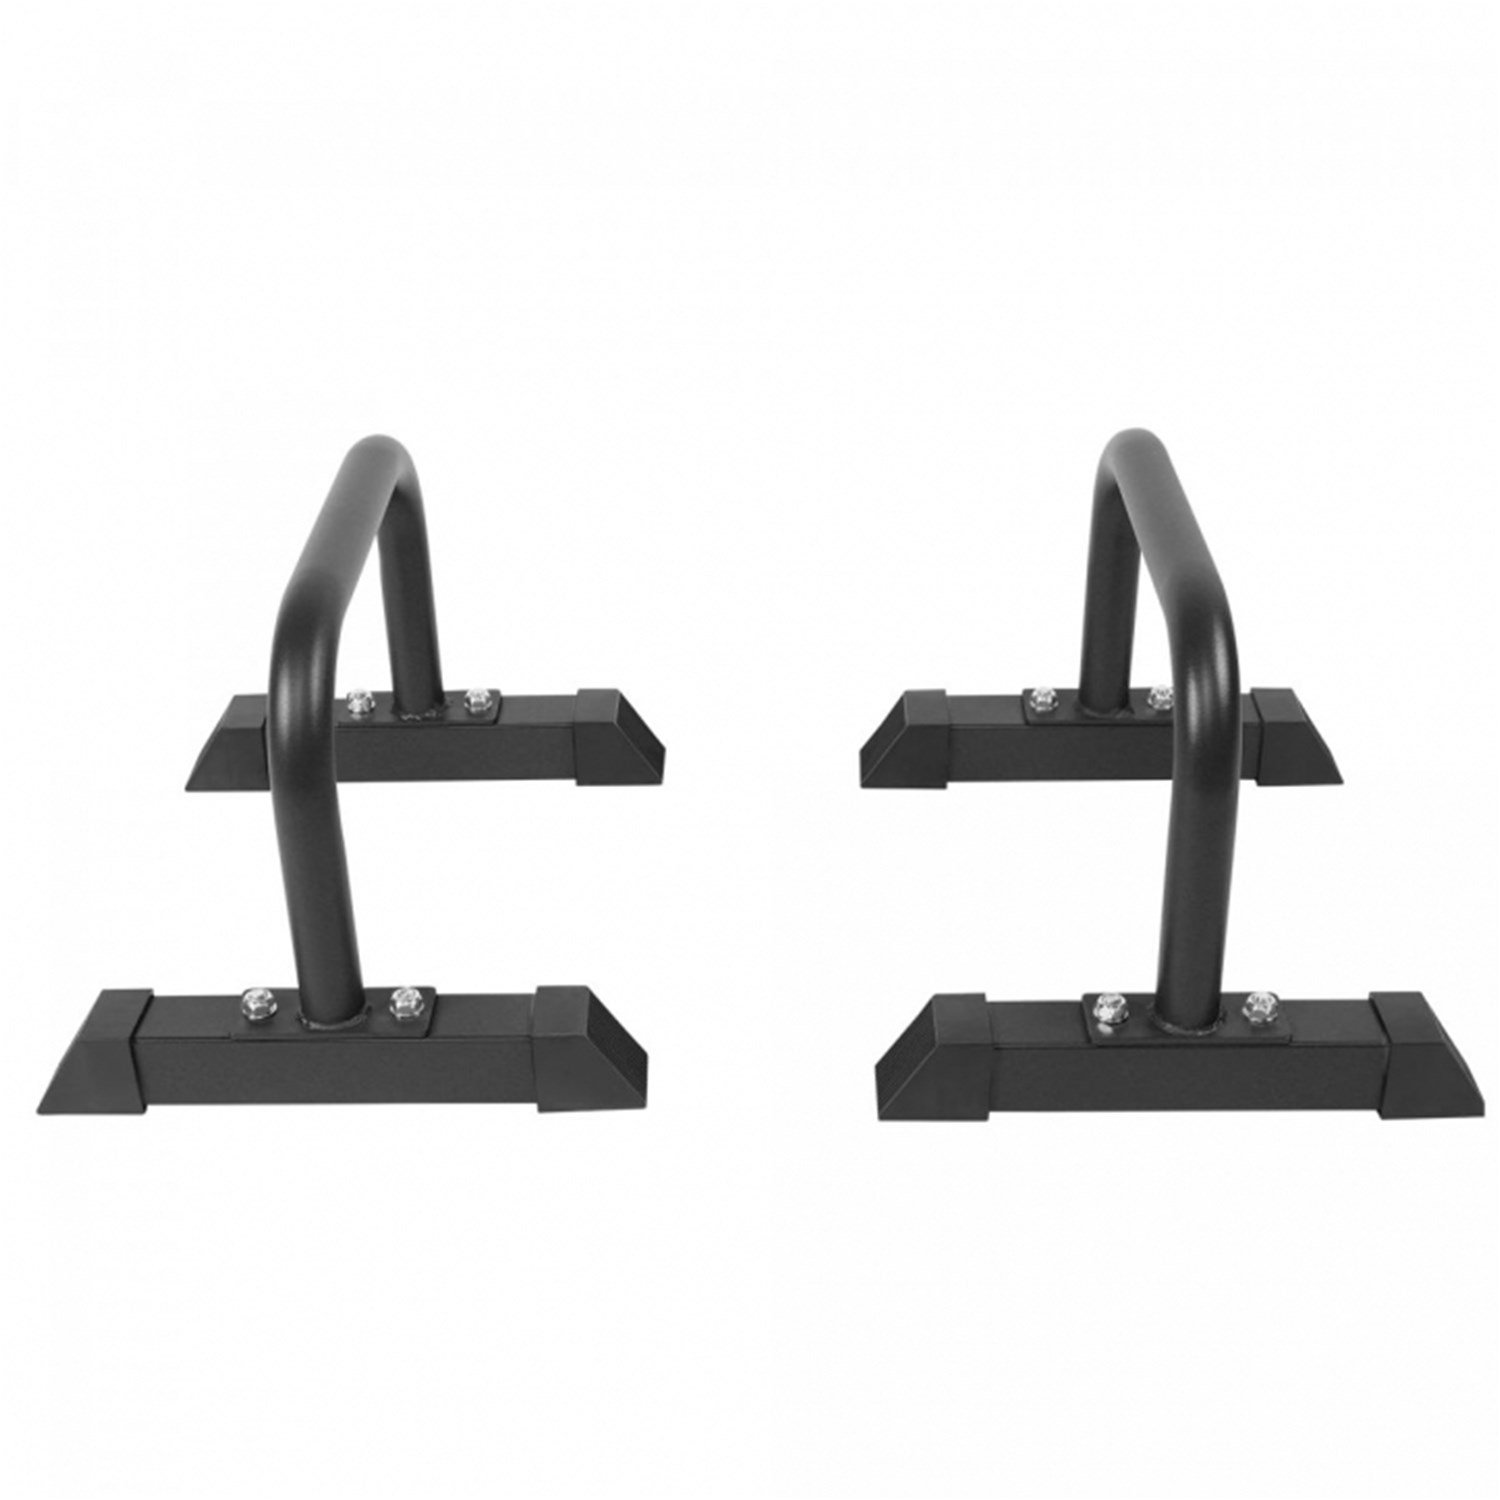 Parallettes Push Up Bars - Low - 4